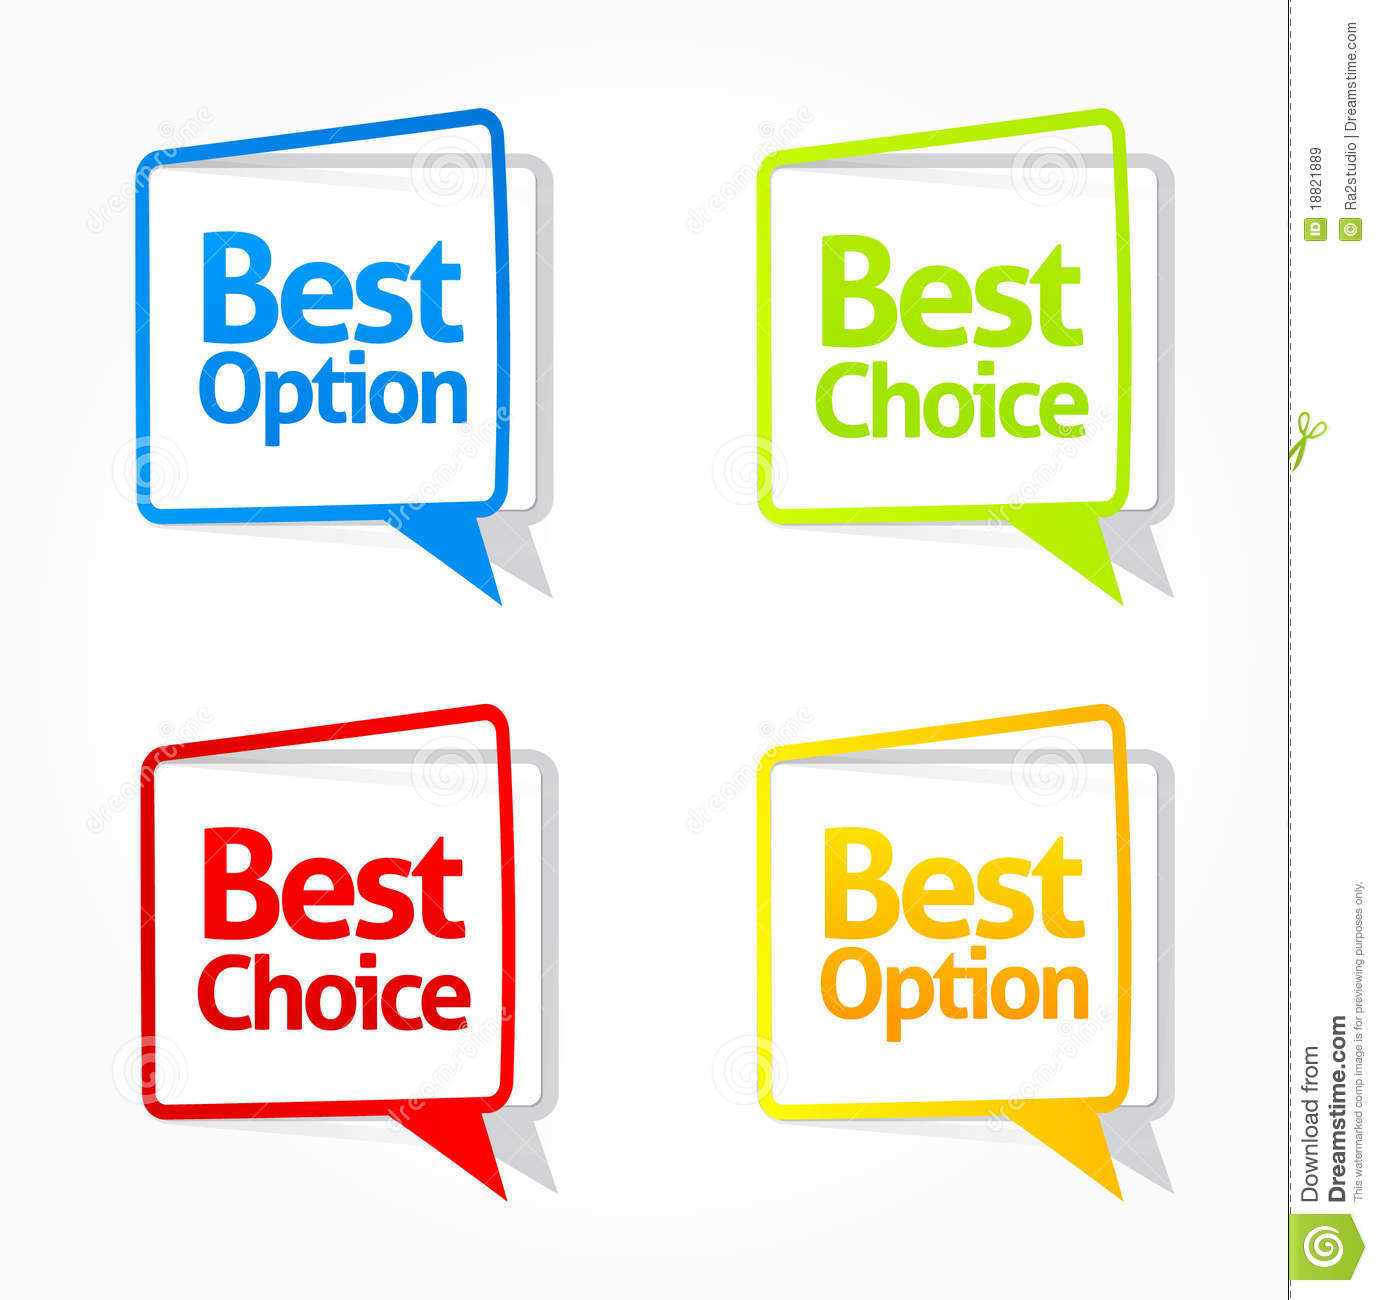 Best options booker and best